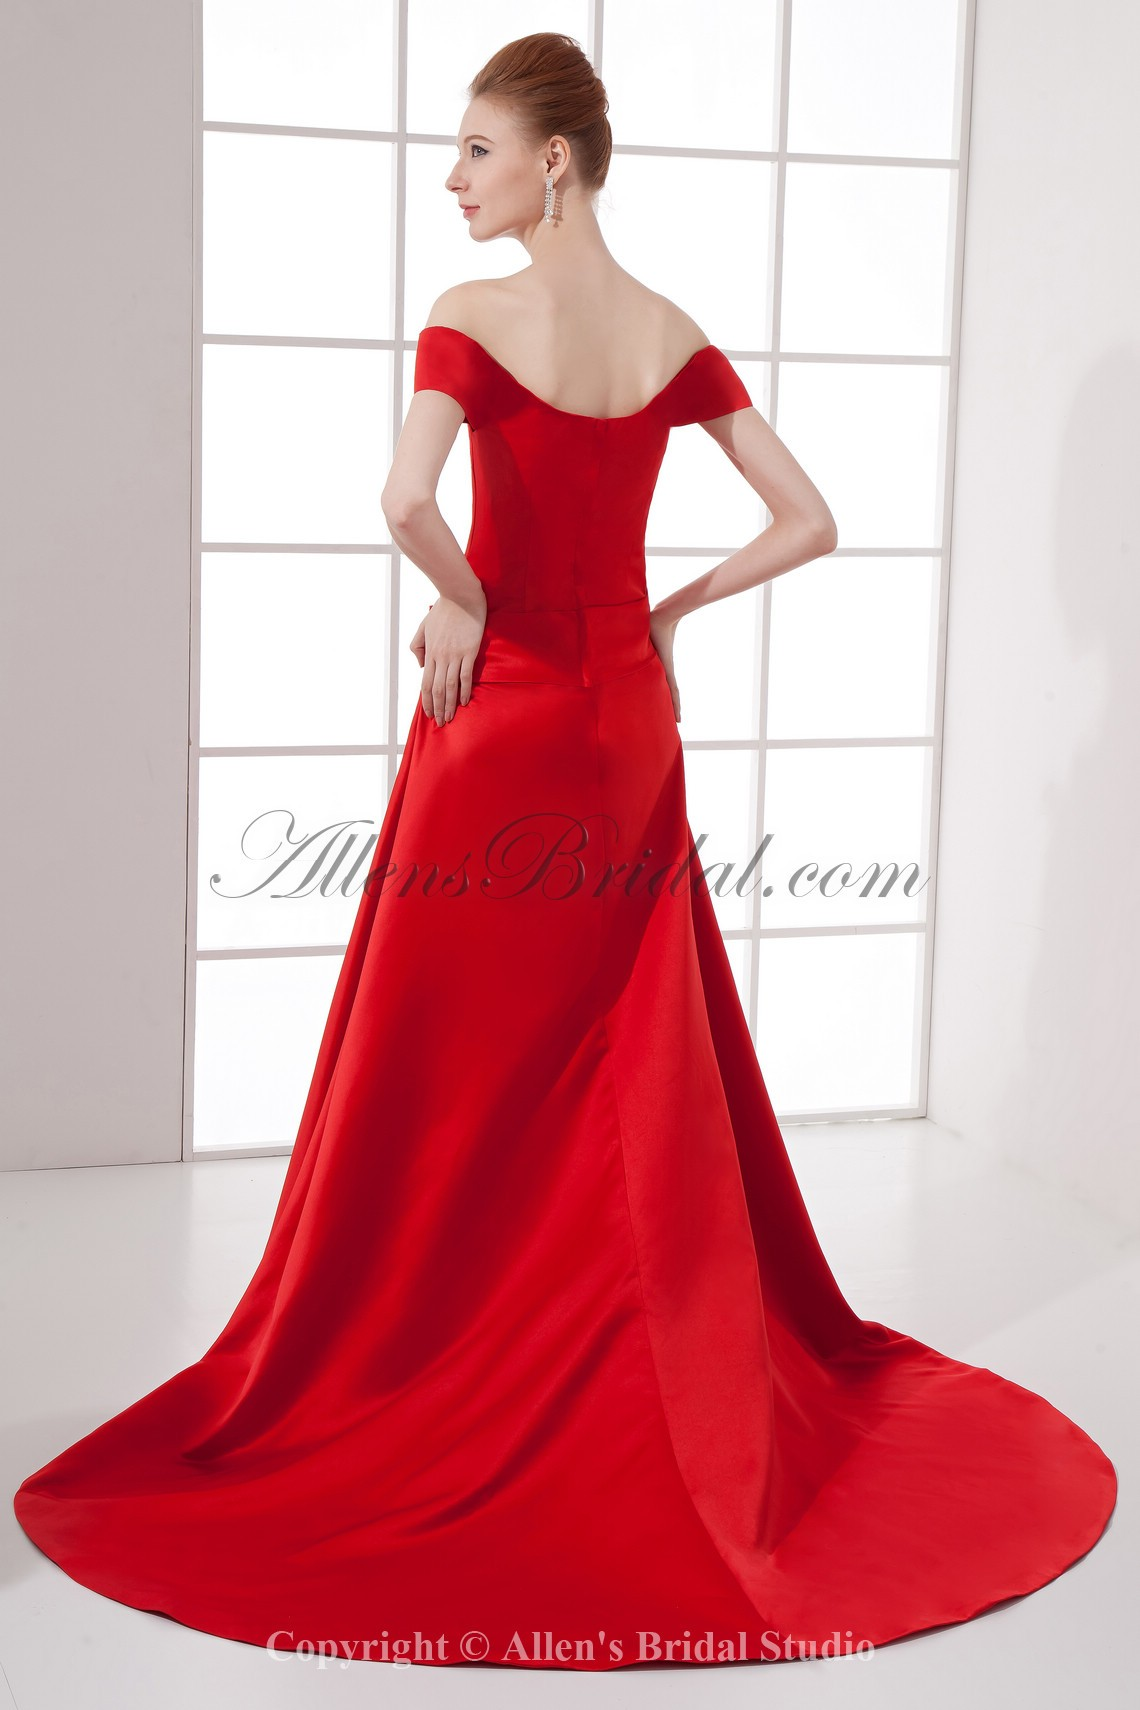 /107-856/satin-off-the-shoulder-neckline-a-line-chapel-train-bow-prom-dress.jpg